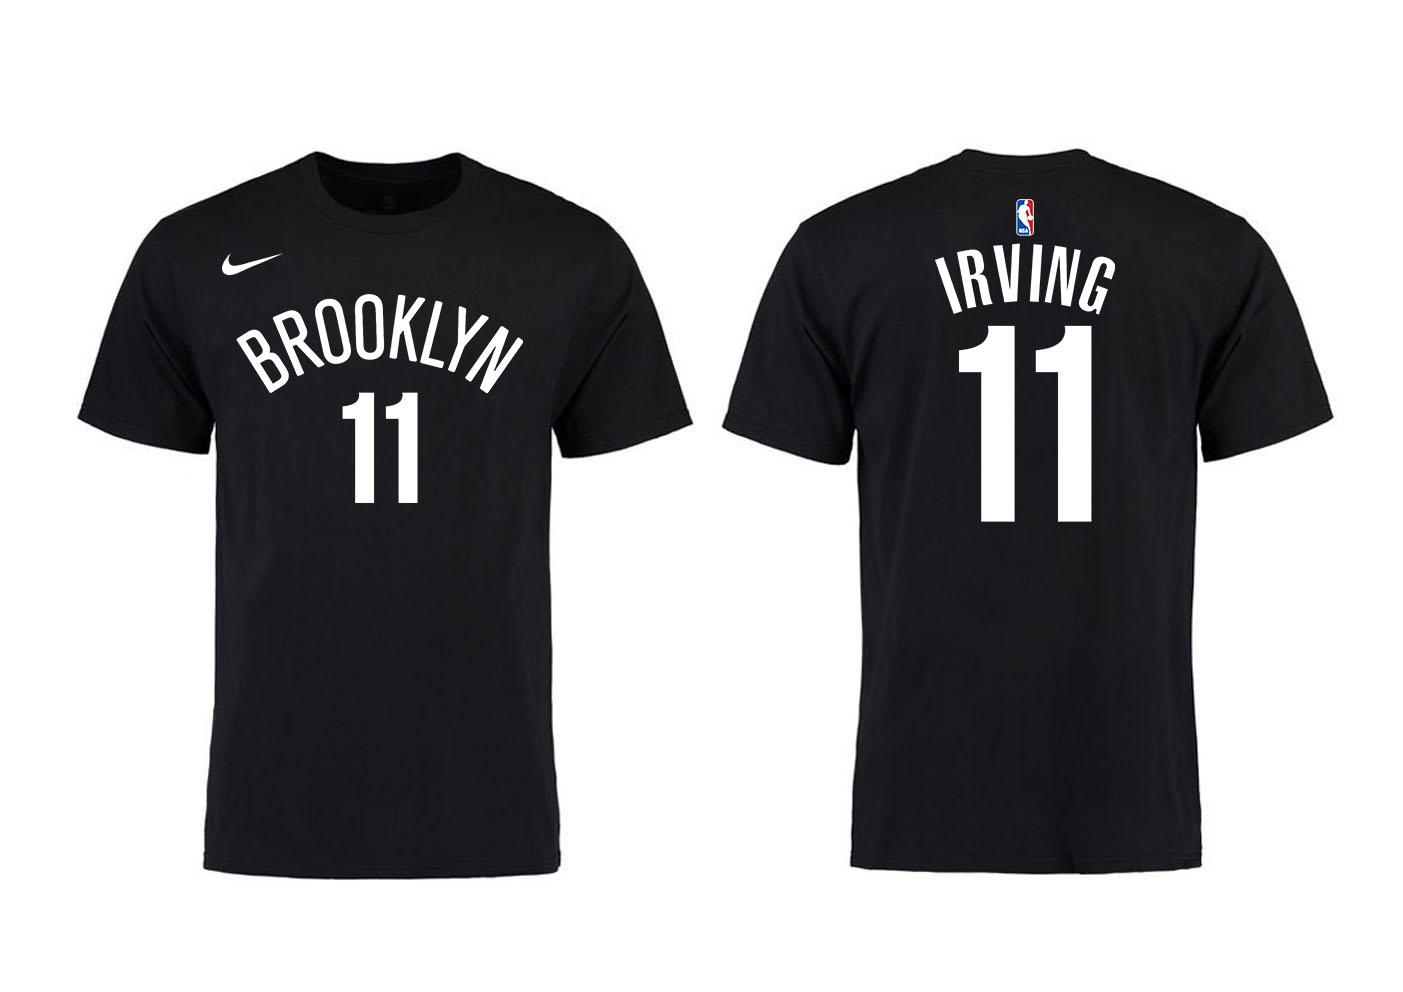 Brooklyn Nets 11 Kyrie Irving Black Nike T-Shirt